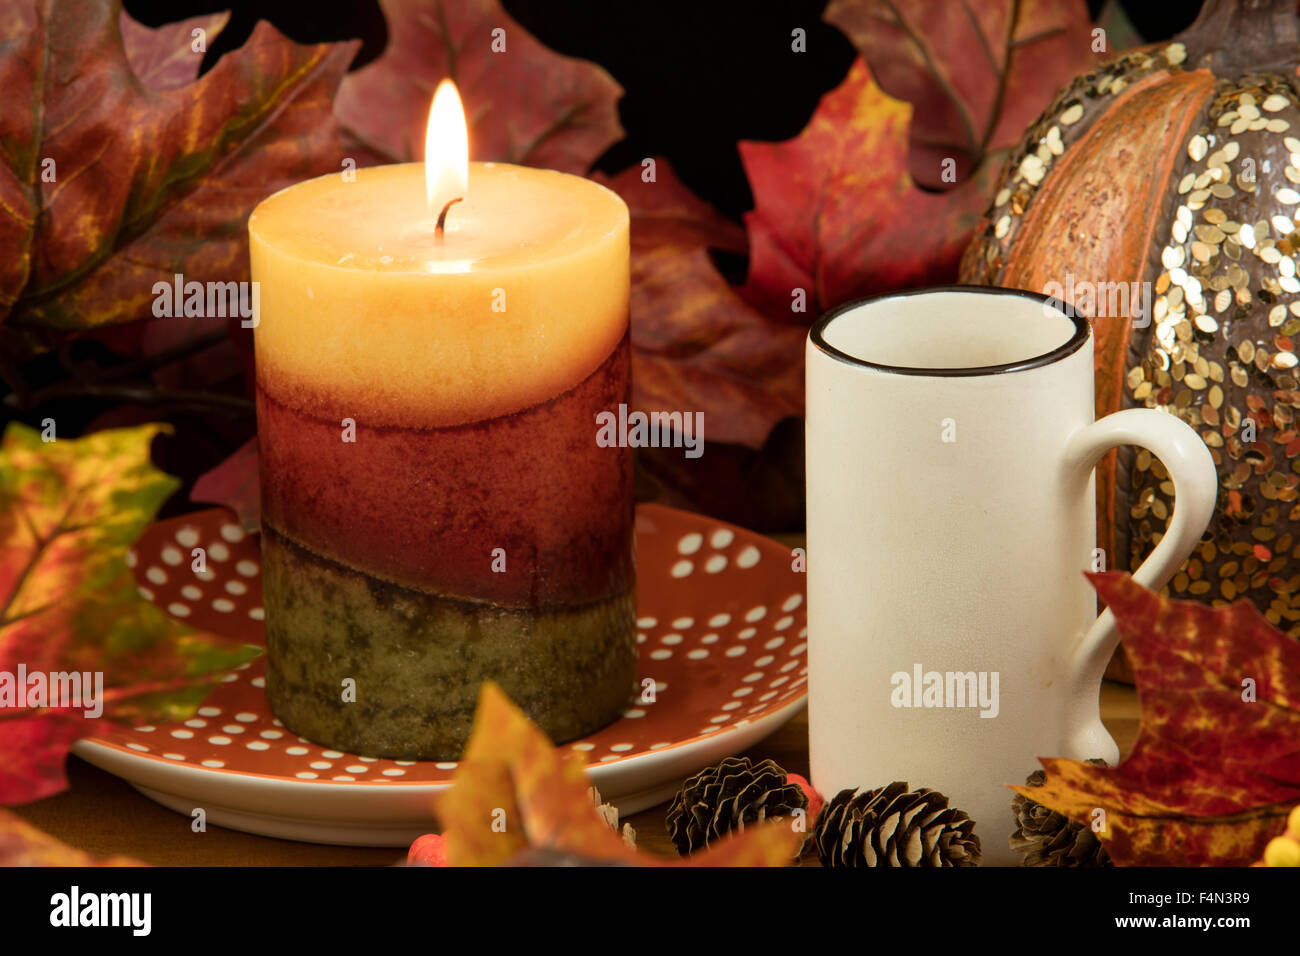 A cup of coffee with a lit candle and pumpkin decoration as a fall ...